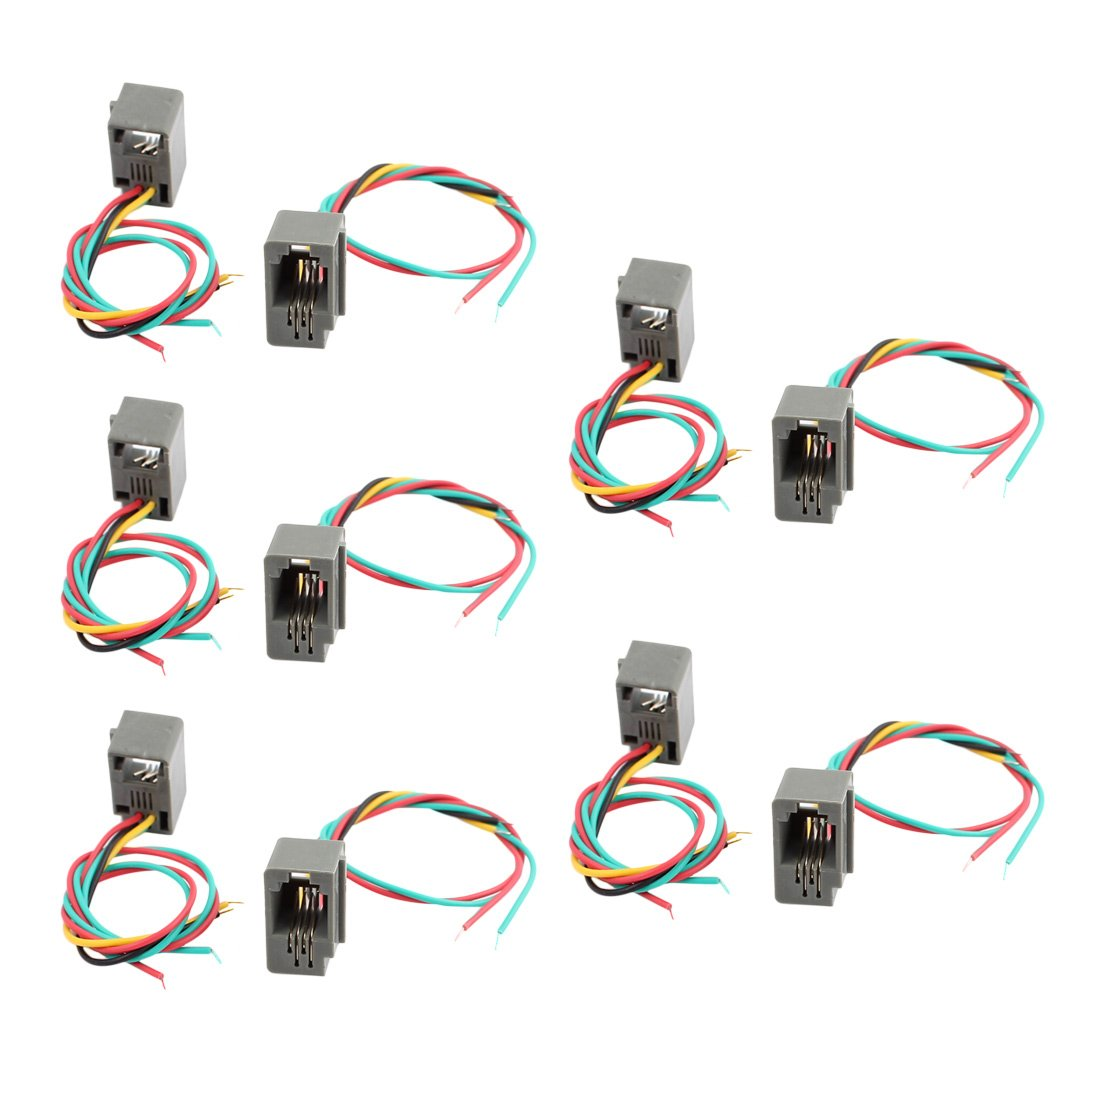 10Pcs 616E 4P4C RJ9 Female Telephone Connector Adapter with 4 Wires  new.